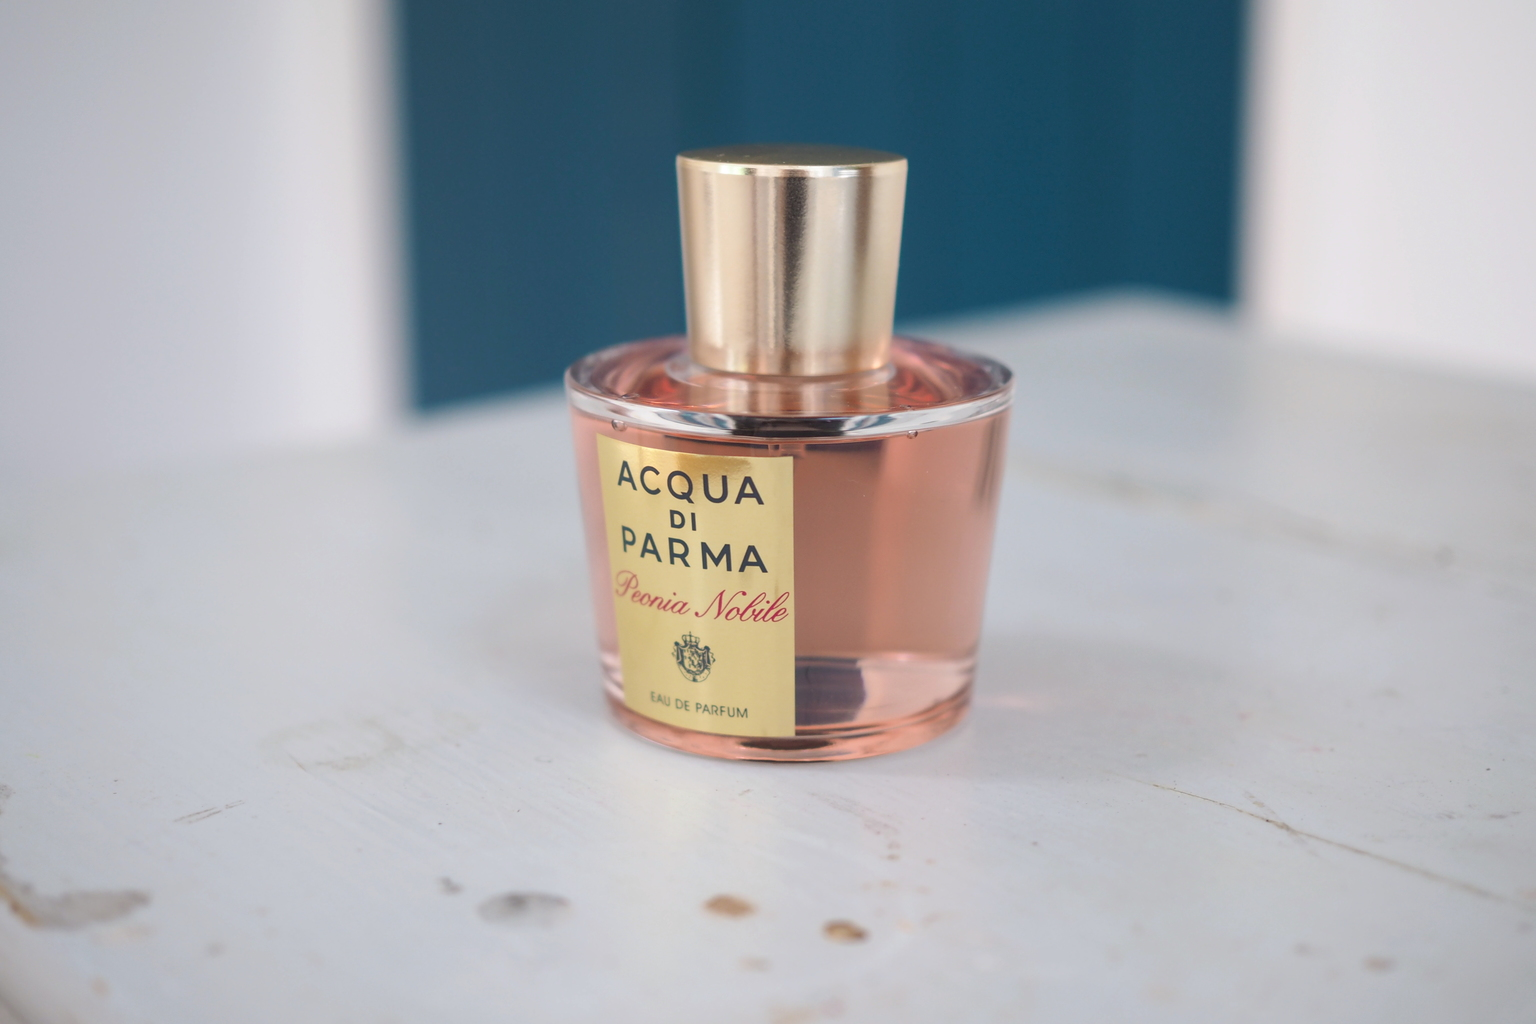 SCENT PROFILE: AQUA DI PARMA PEONIA NOBILE review